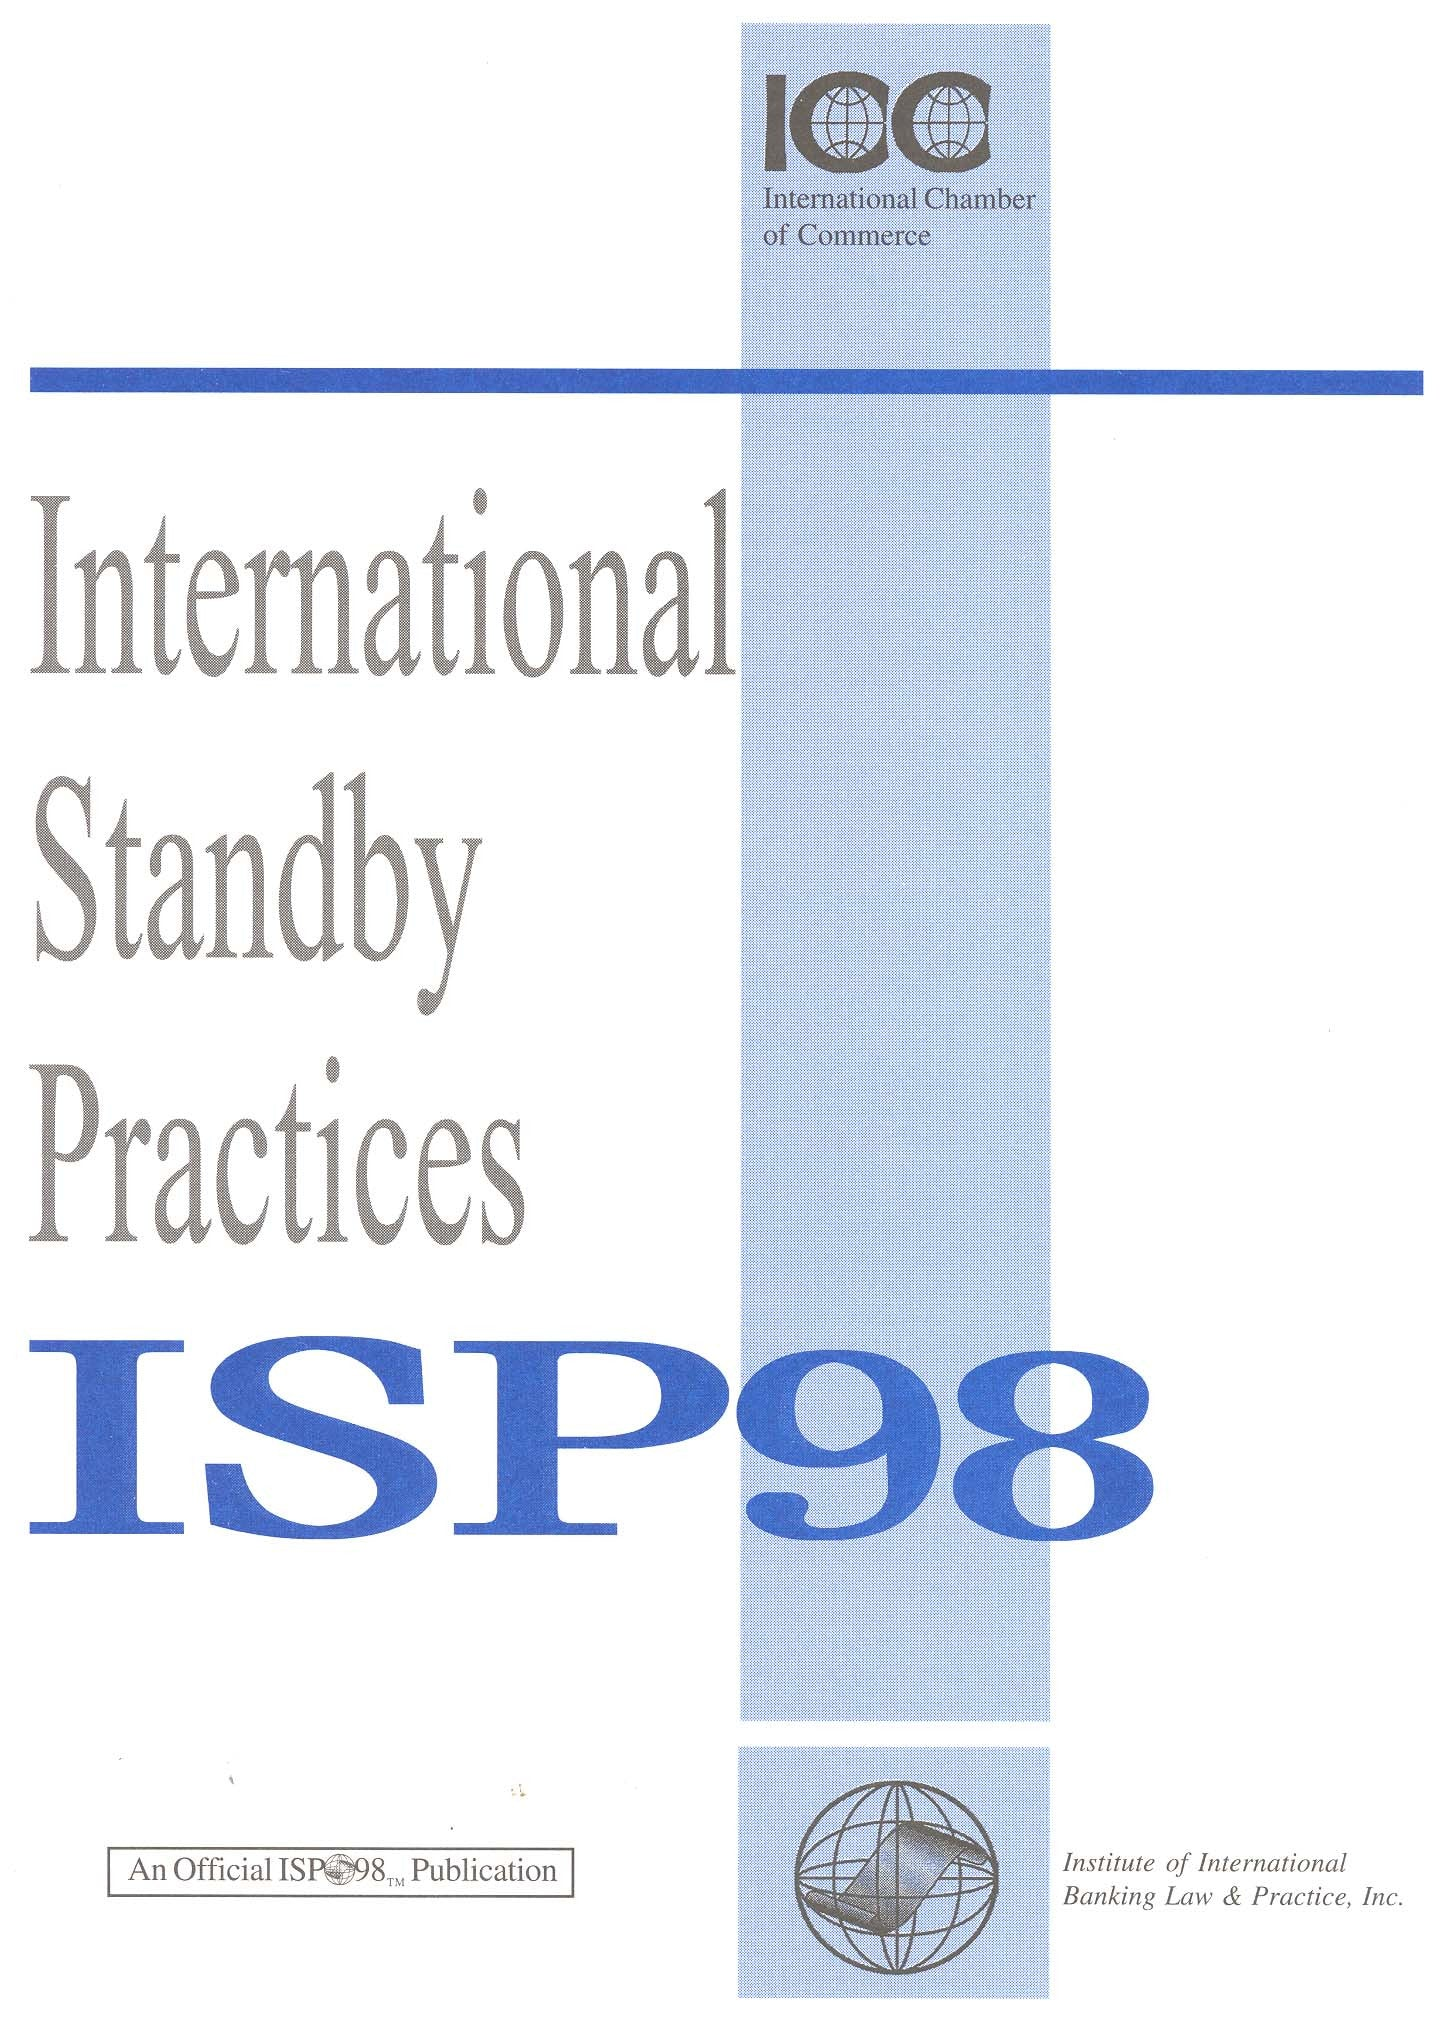 ISP98: The Rules (leaflet)